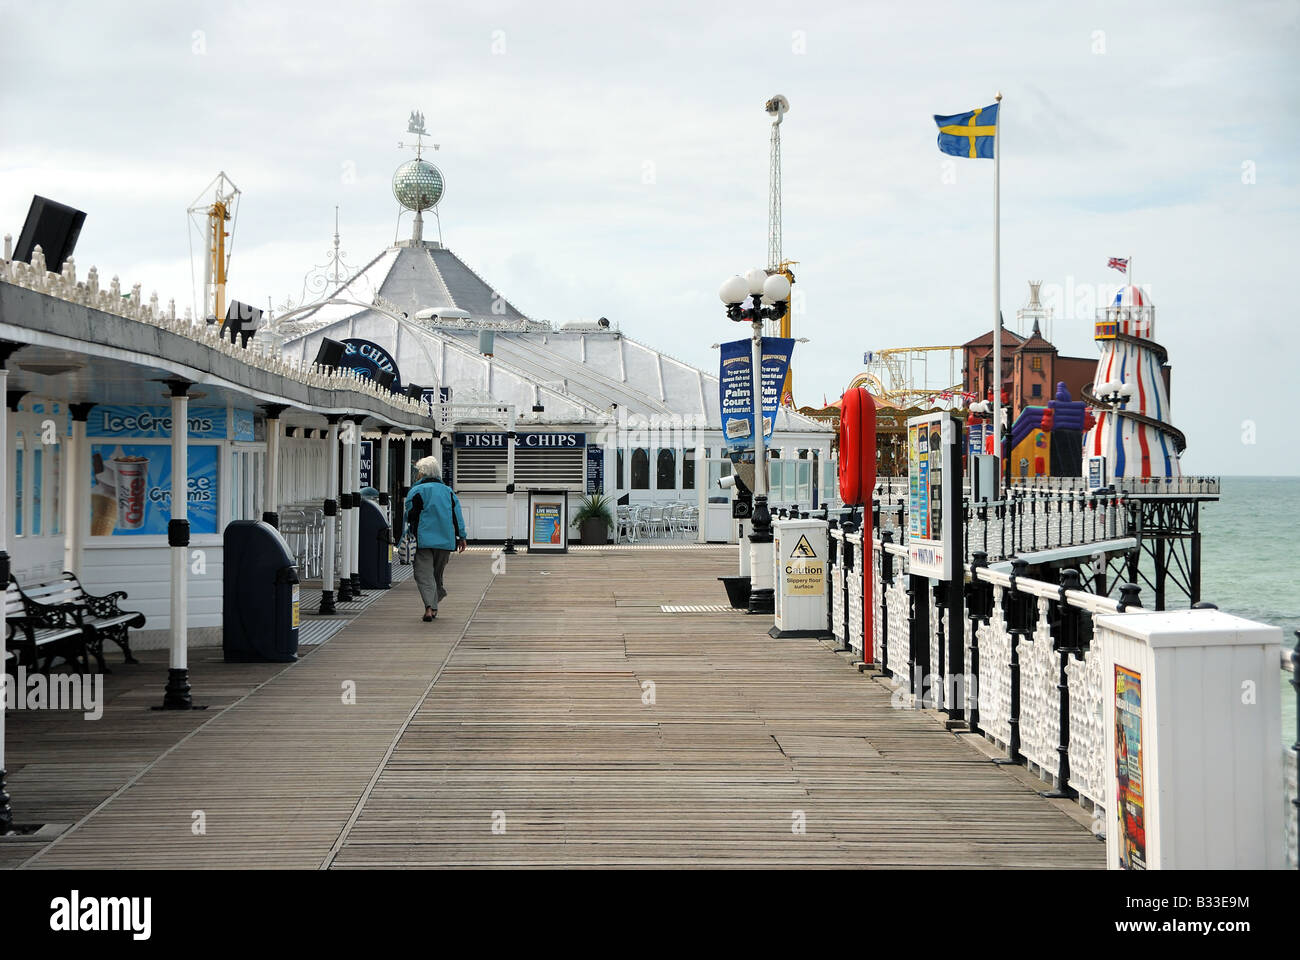 Fun Fair and Fish and Chip Shop on Brighton Pier - Stock Image